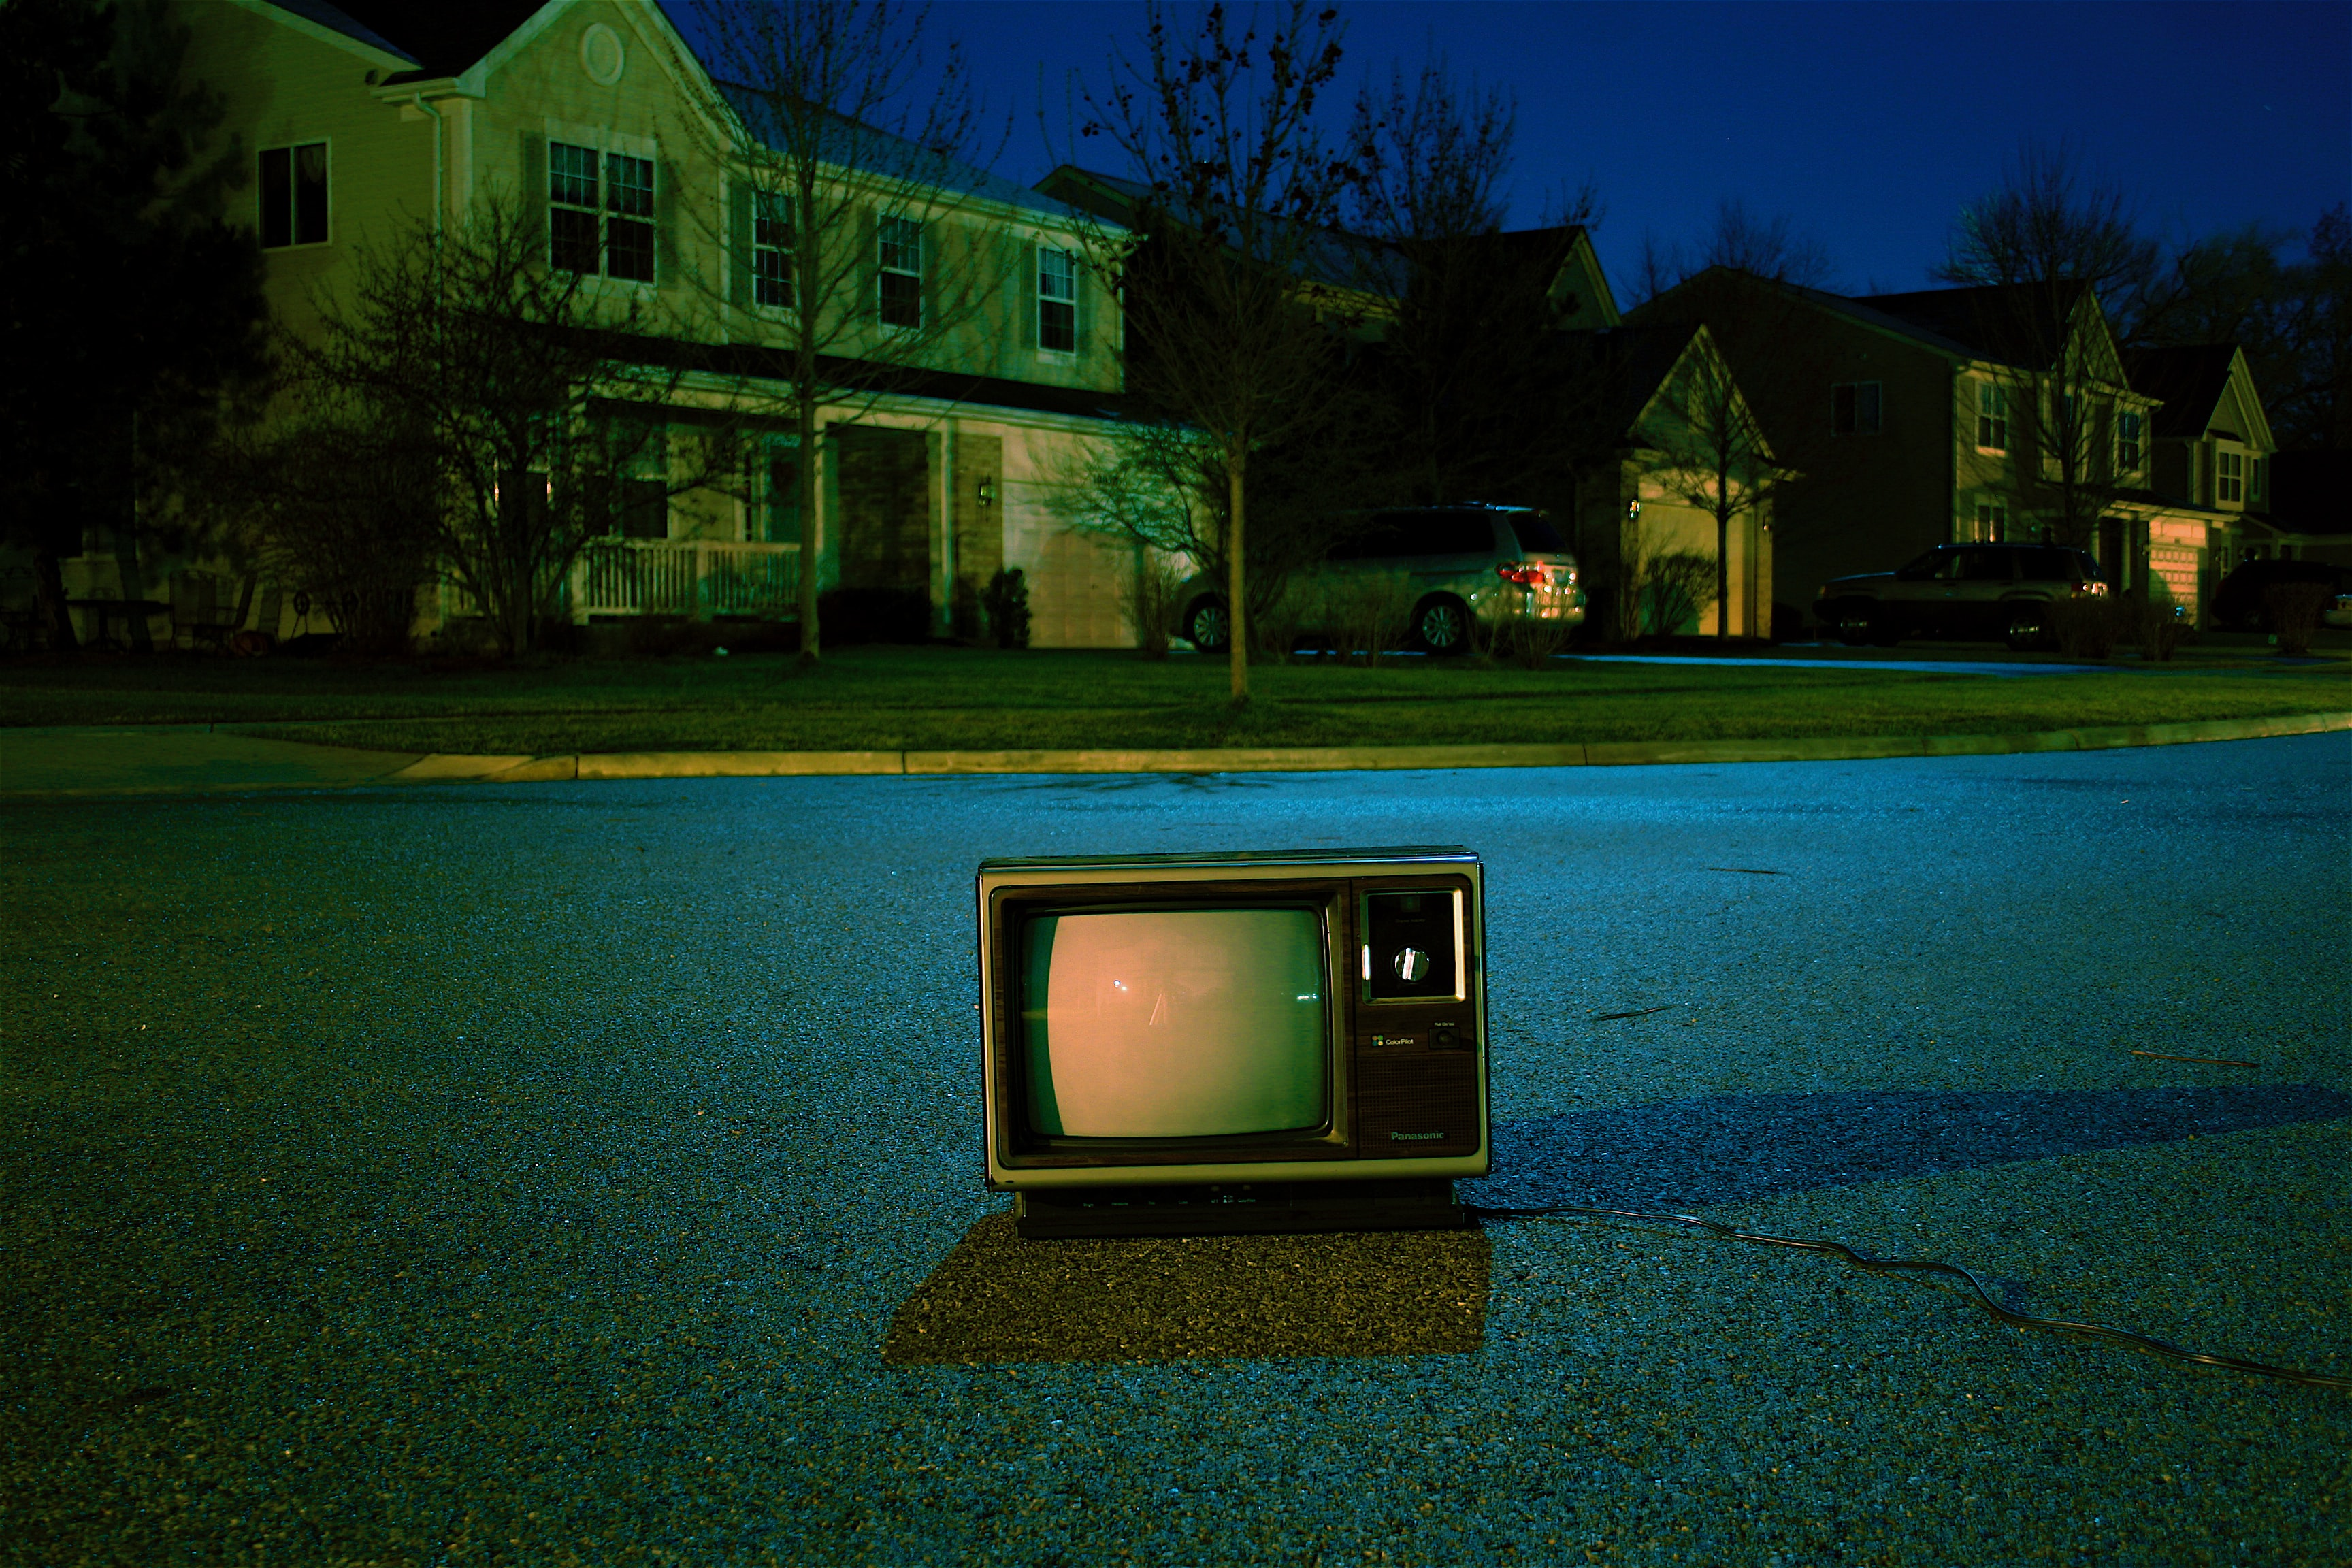 Night-time shot of retro TV in middle of neighborhood road in suburbs